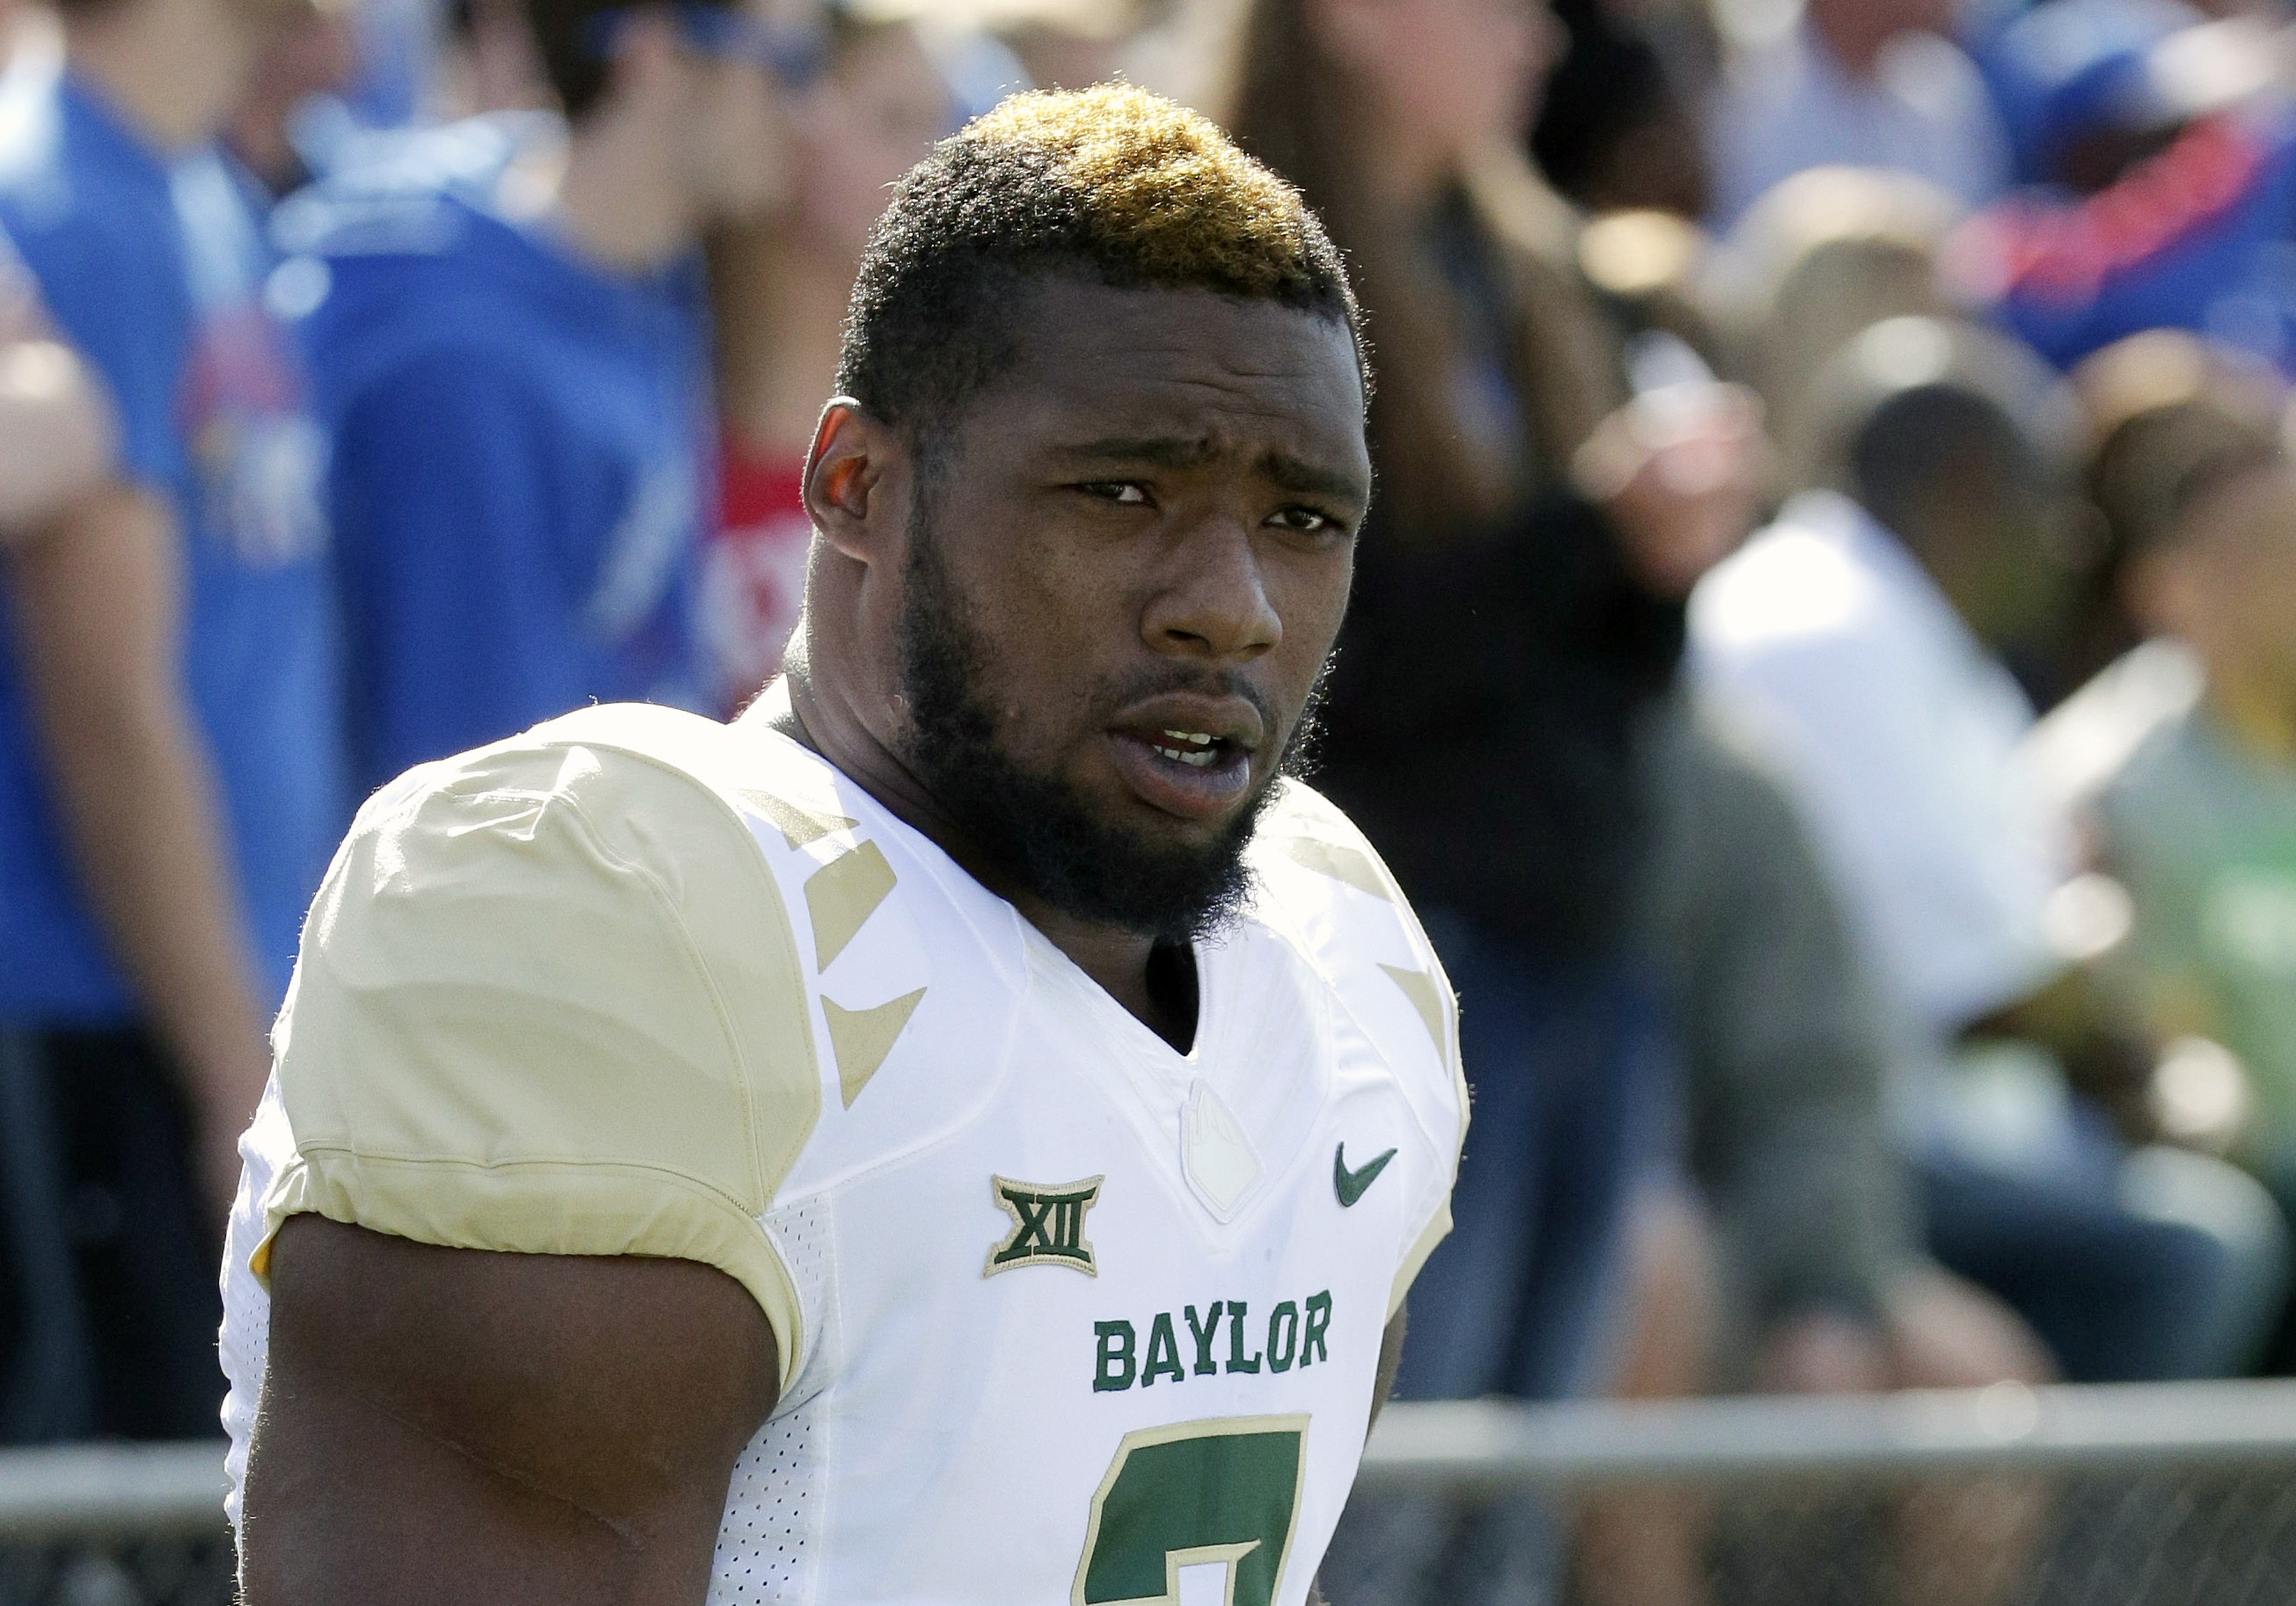 FILE - In this Oct. 10, 2015, file photo, then-Baylor defensive end Shawn Oakman warms up before an NCAA college football game against Kansas, in Lawrence, Kan. Texas authorities are investigating allegations by a woman who says she was sexually assaulted